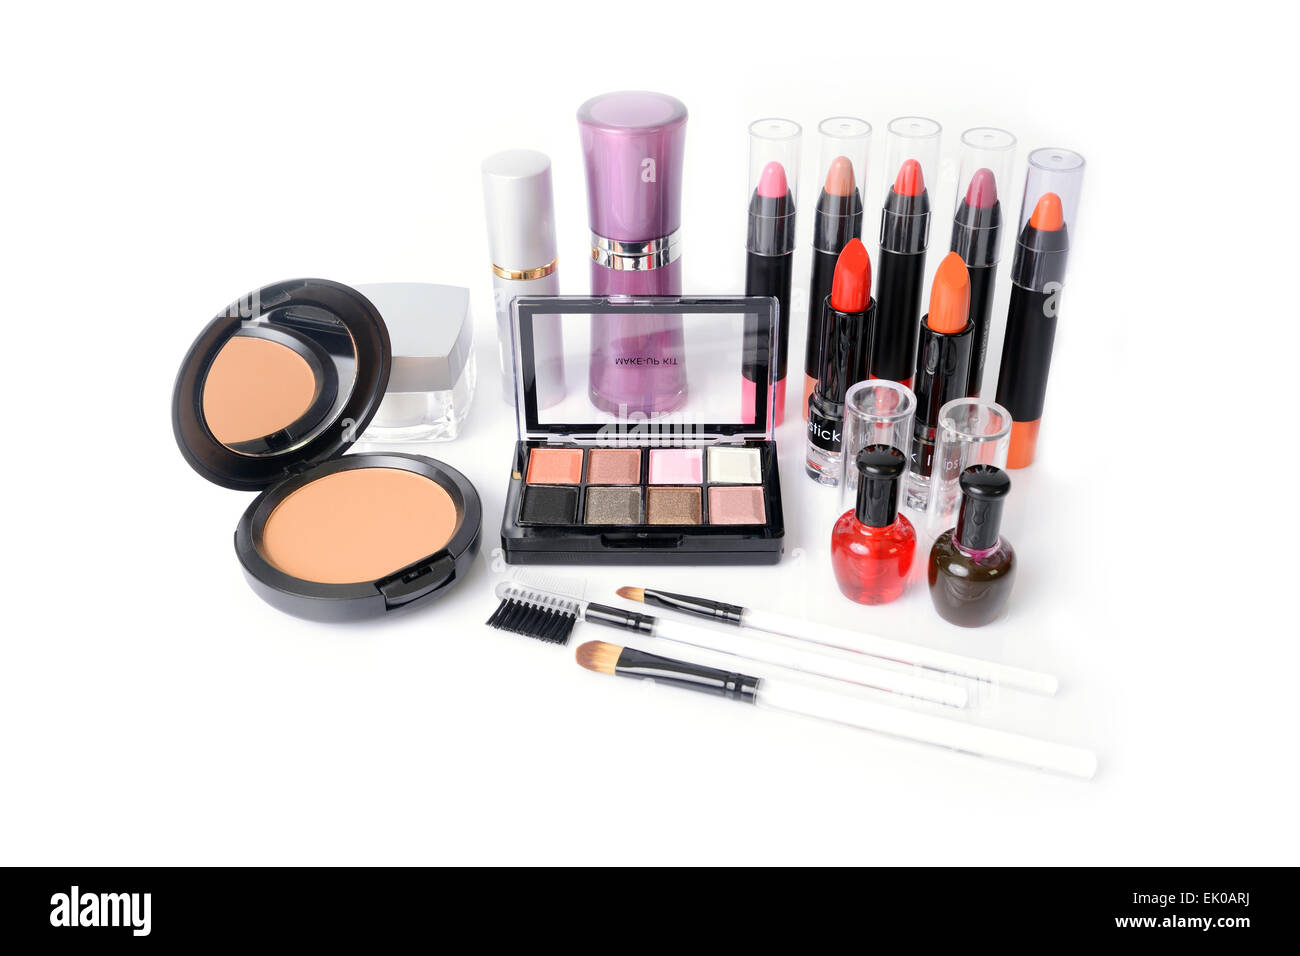 Many kind of cosmetics and makeup accessory was placed in a mess. - Stock Image